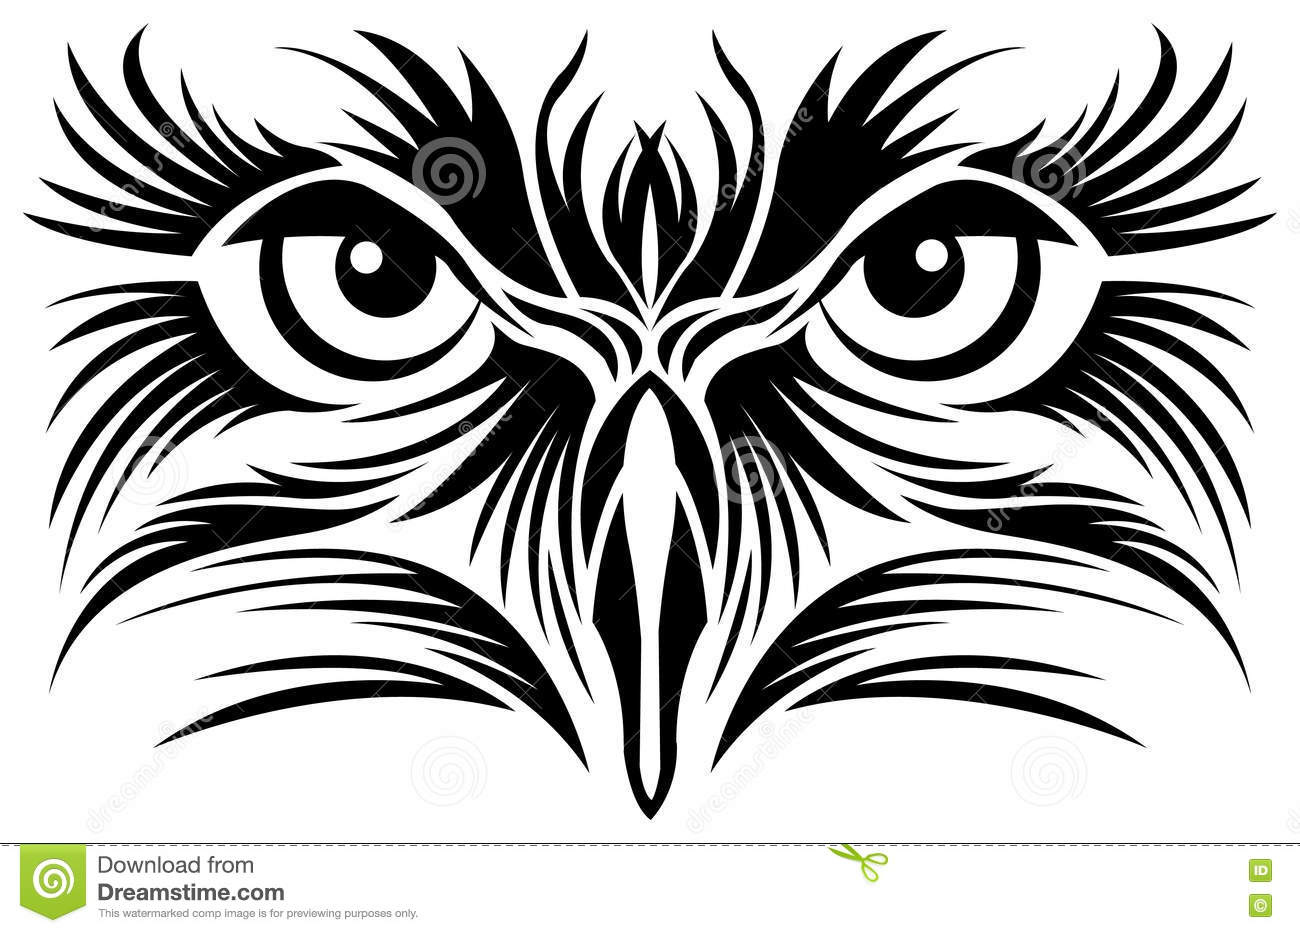 Atacking Eagle In Flames 4 Royalty Free Stock Photo